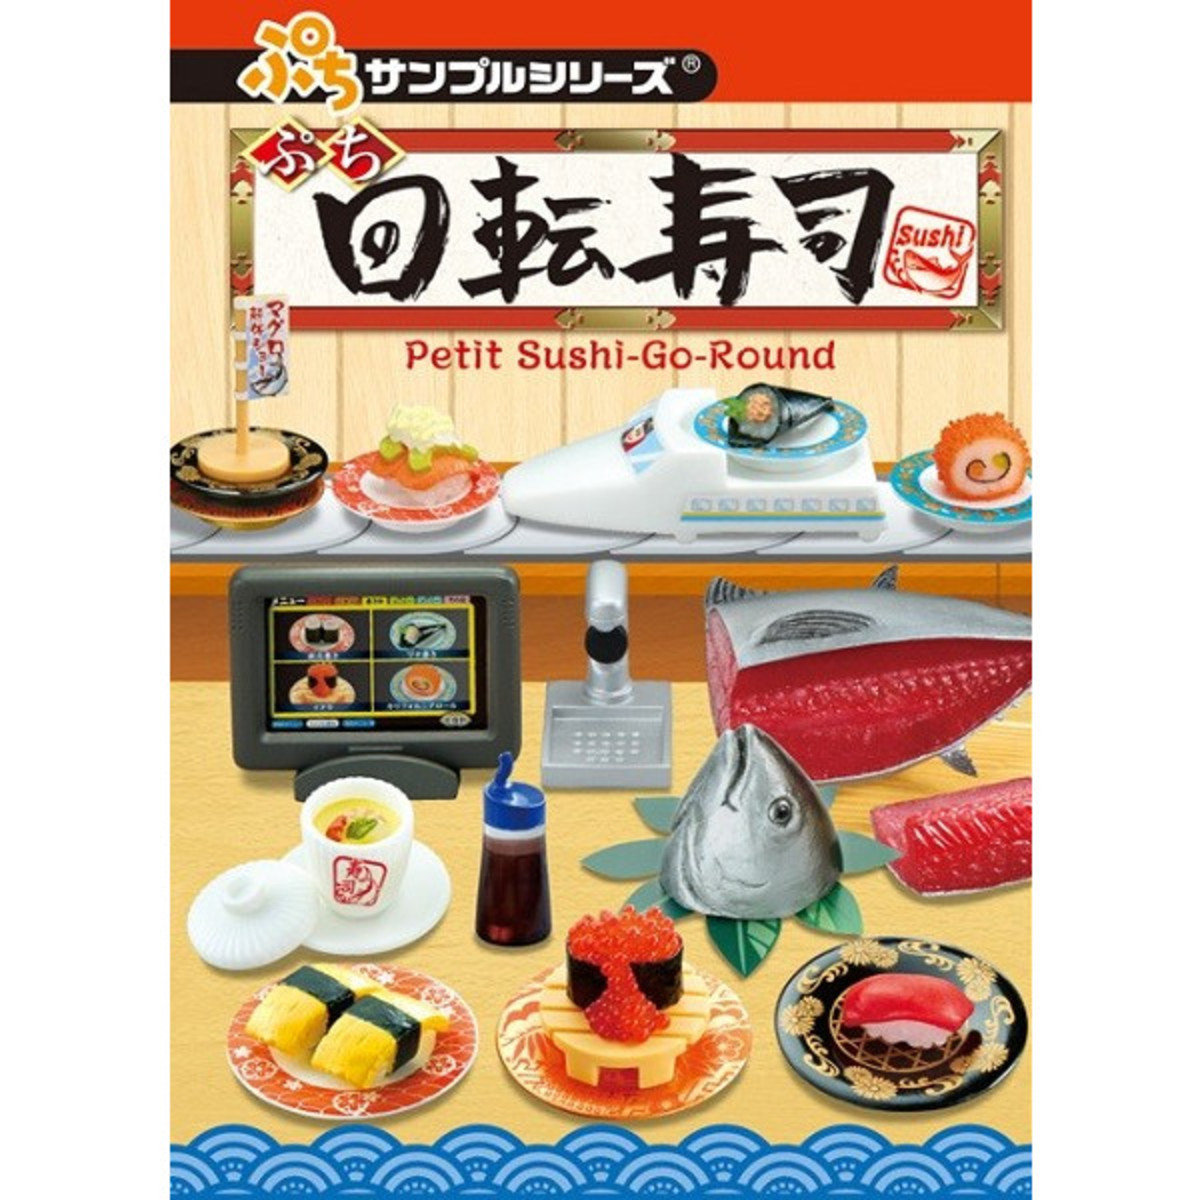 Re-Ment Petit Sample Series Petit Sushi Go Round (Set of 8 pcs)